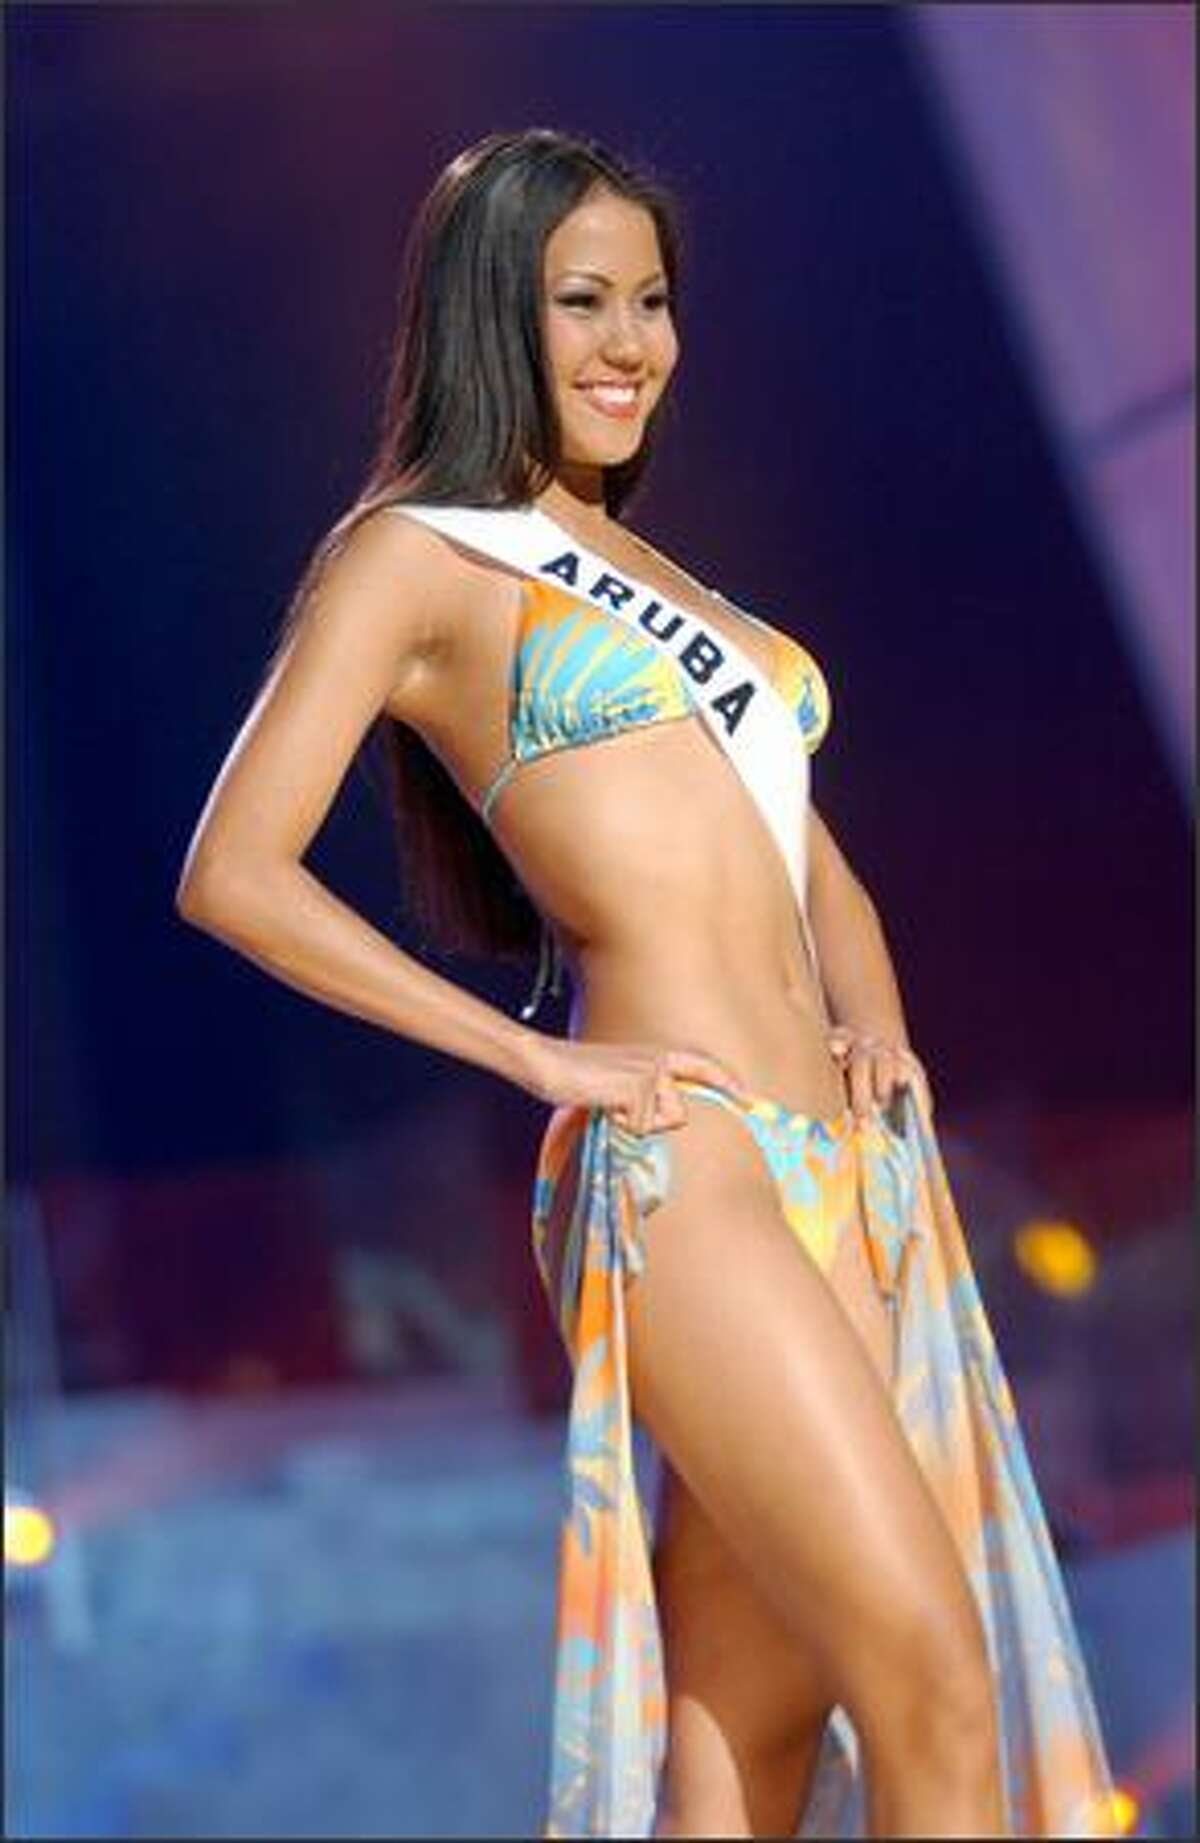 Zizi Lee, Miss Aruba.